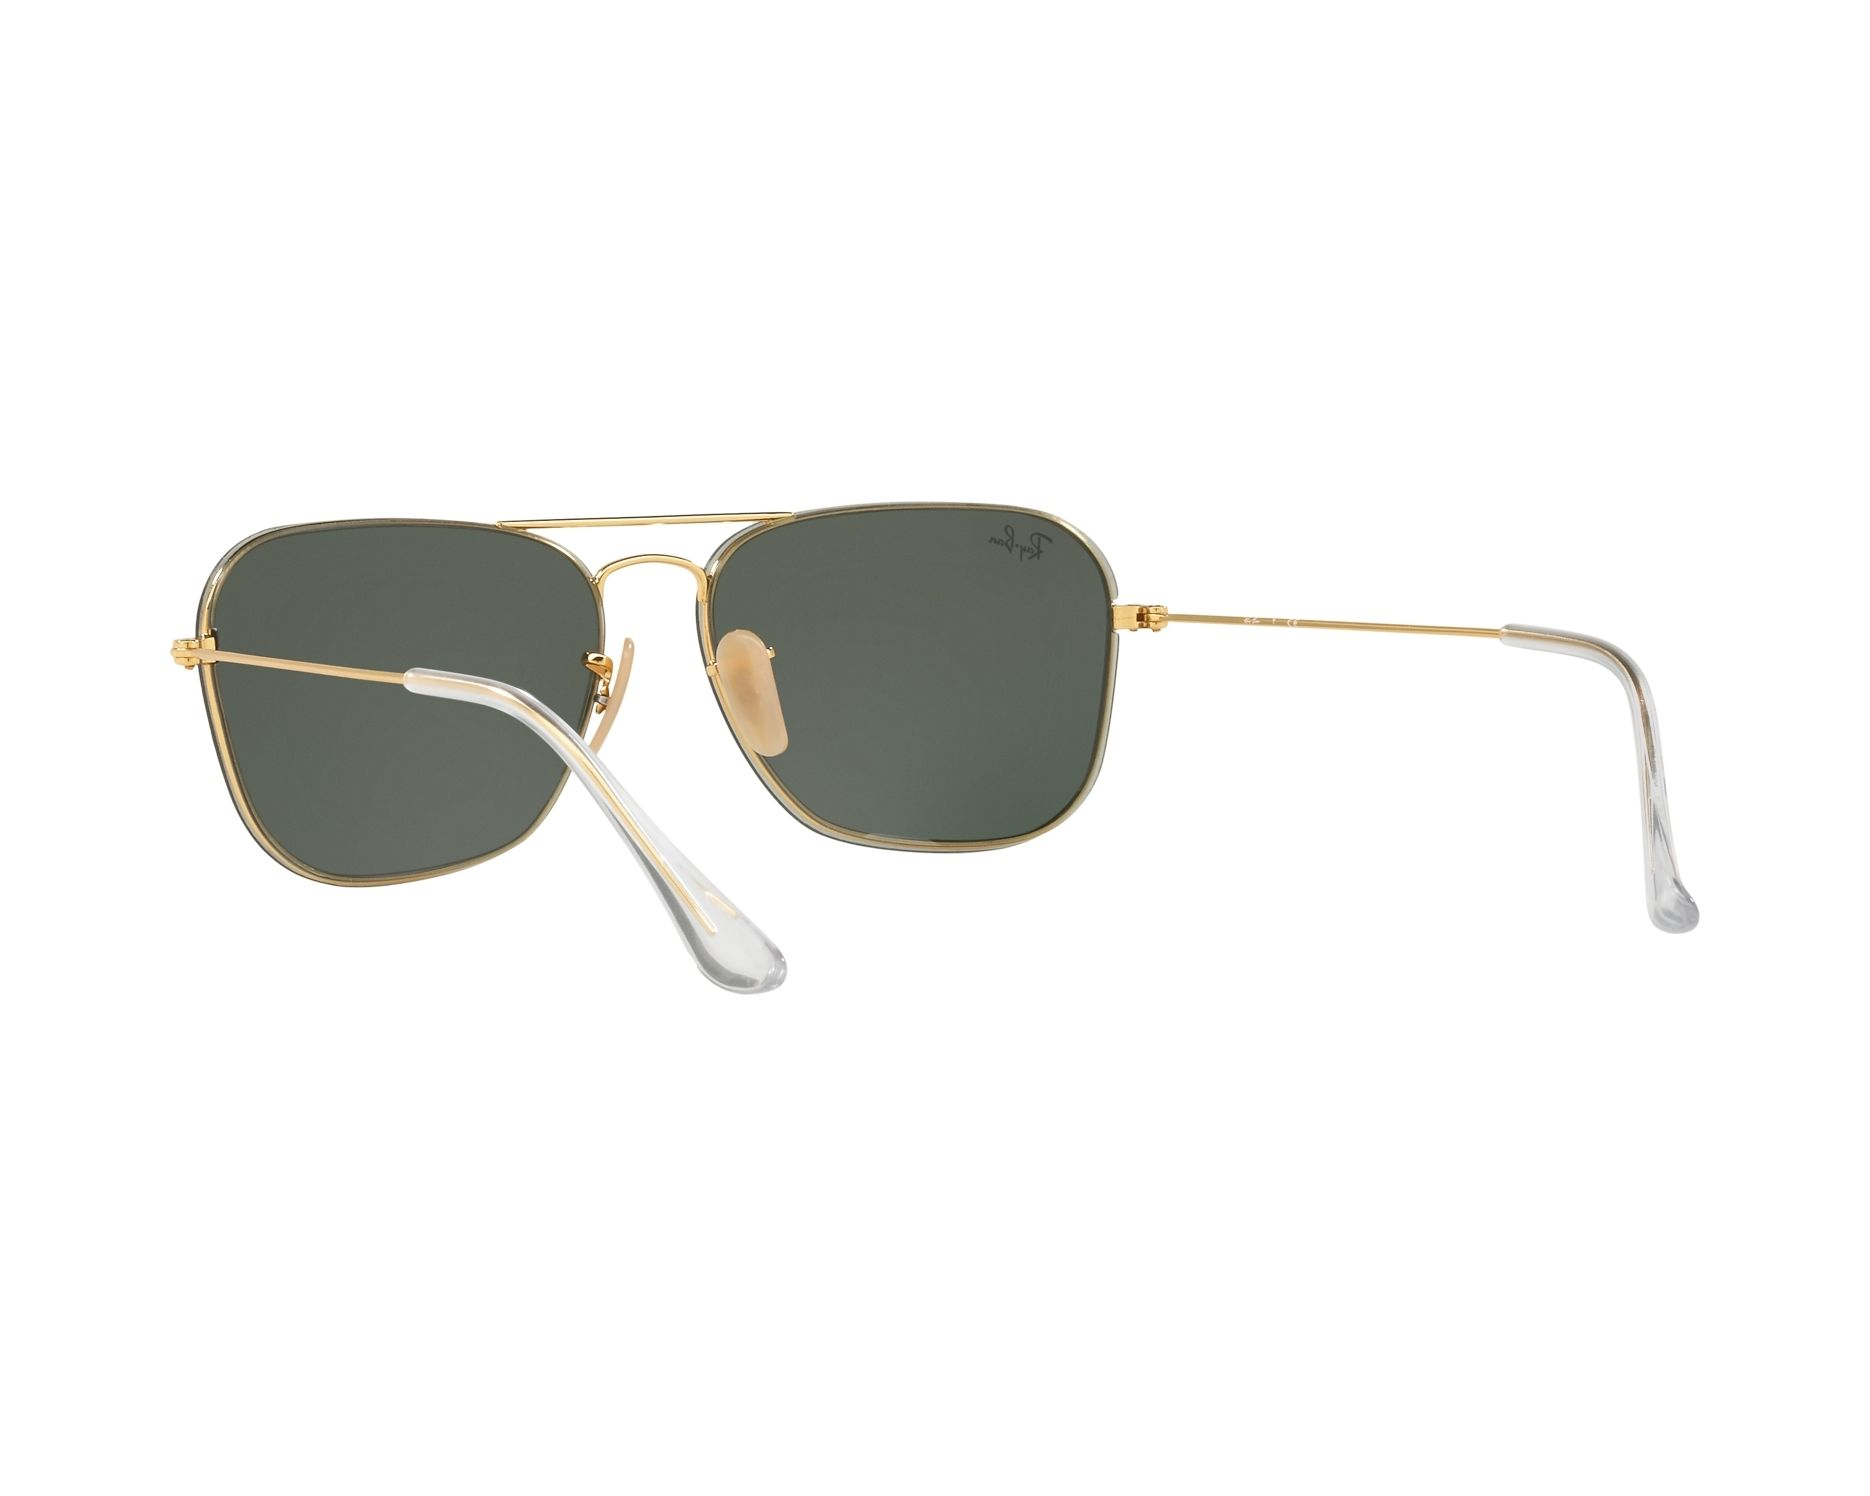 Ray-Ban RB3603 Sonnenbrille Gold 001/71 56mm dzD2zM